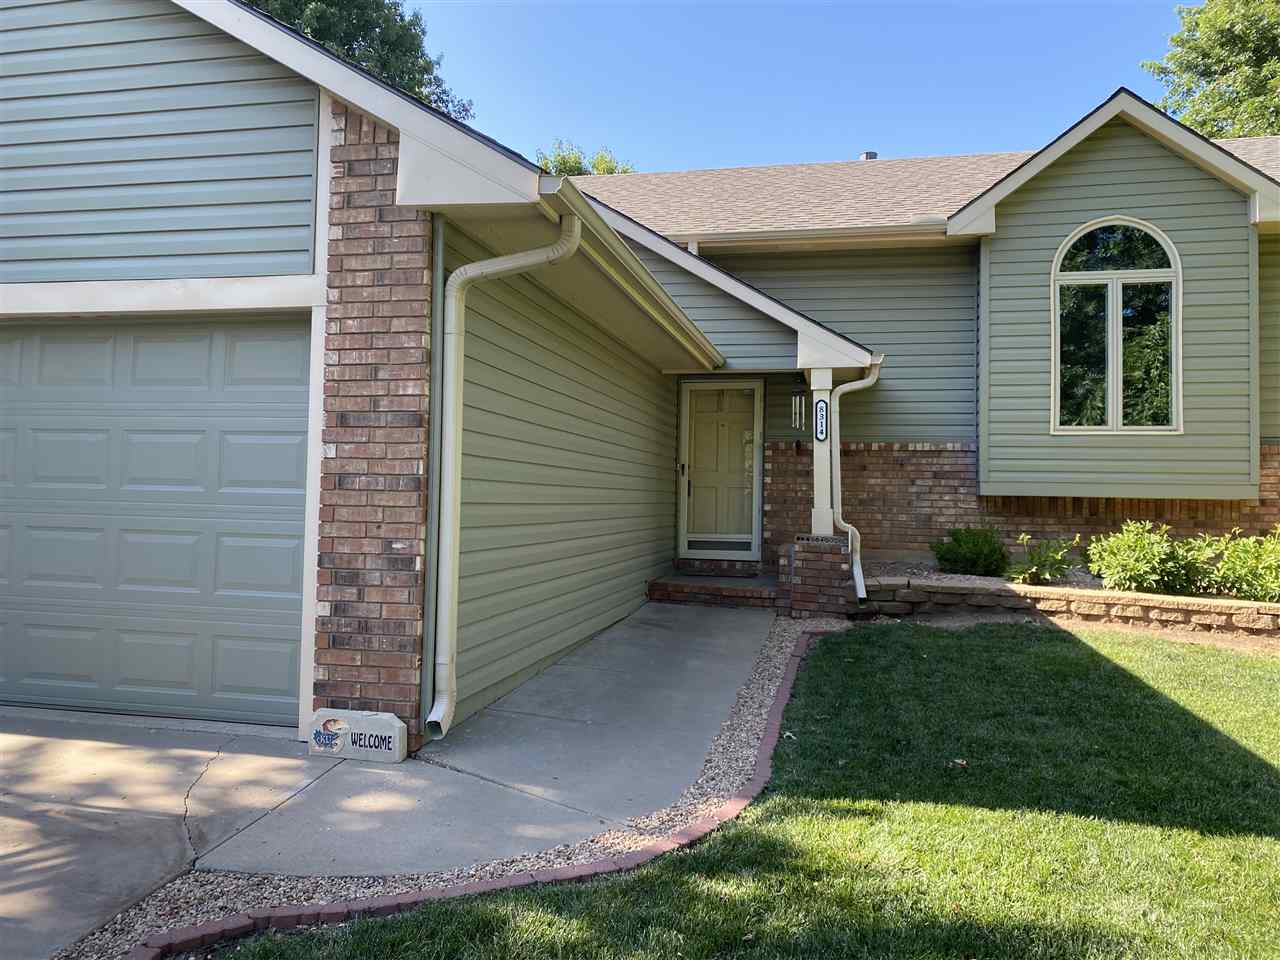 Extremely well kept and updated 4 bedroom, 3 full bath home in the Maize School District! Close to s